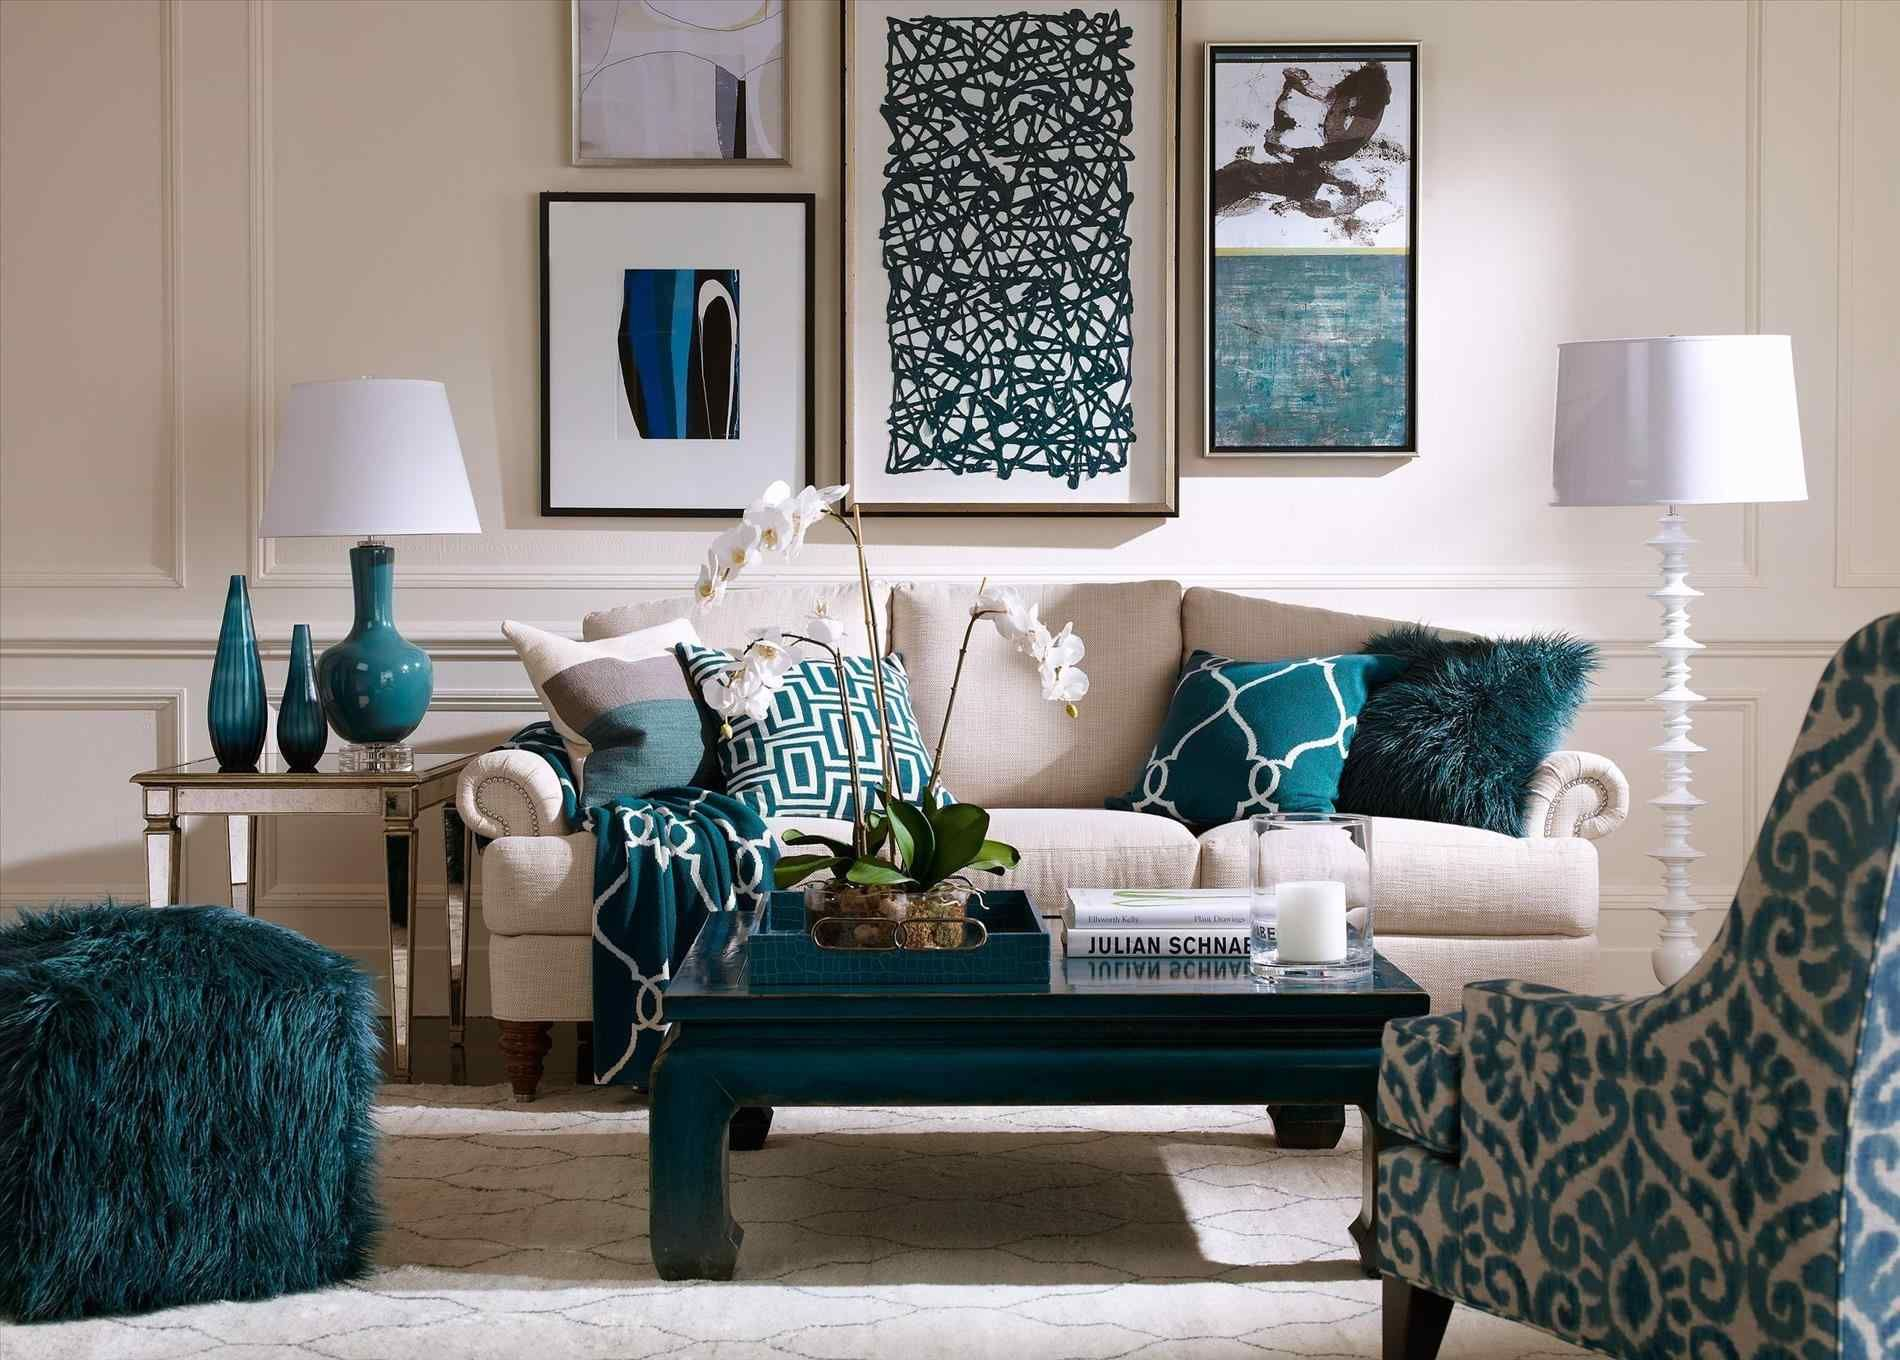 20 Astonishing Teal And Gold Living Room Ideas For Inspiration Webnera Teal Living Rooms Living Room Turquoise Living Room Color